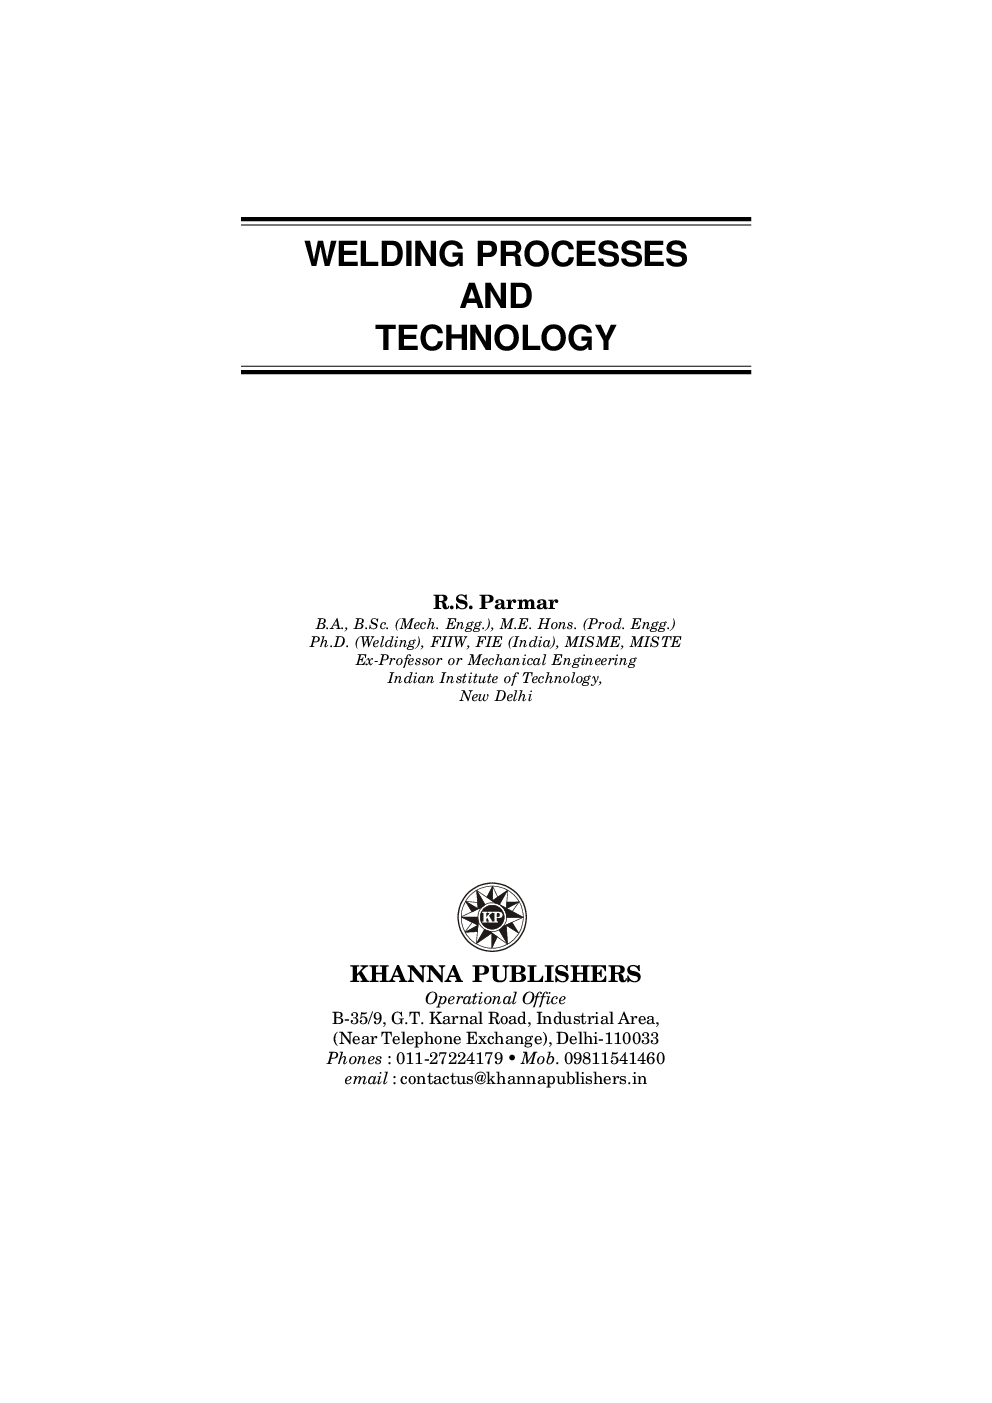 need ebook for welding processes and technology by rs parmar rs parmar welding processes